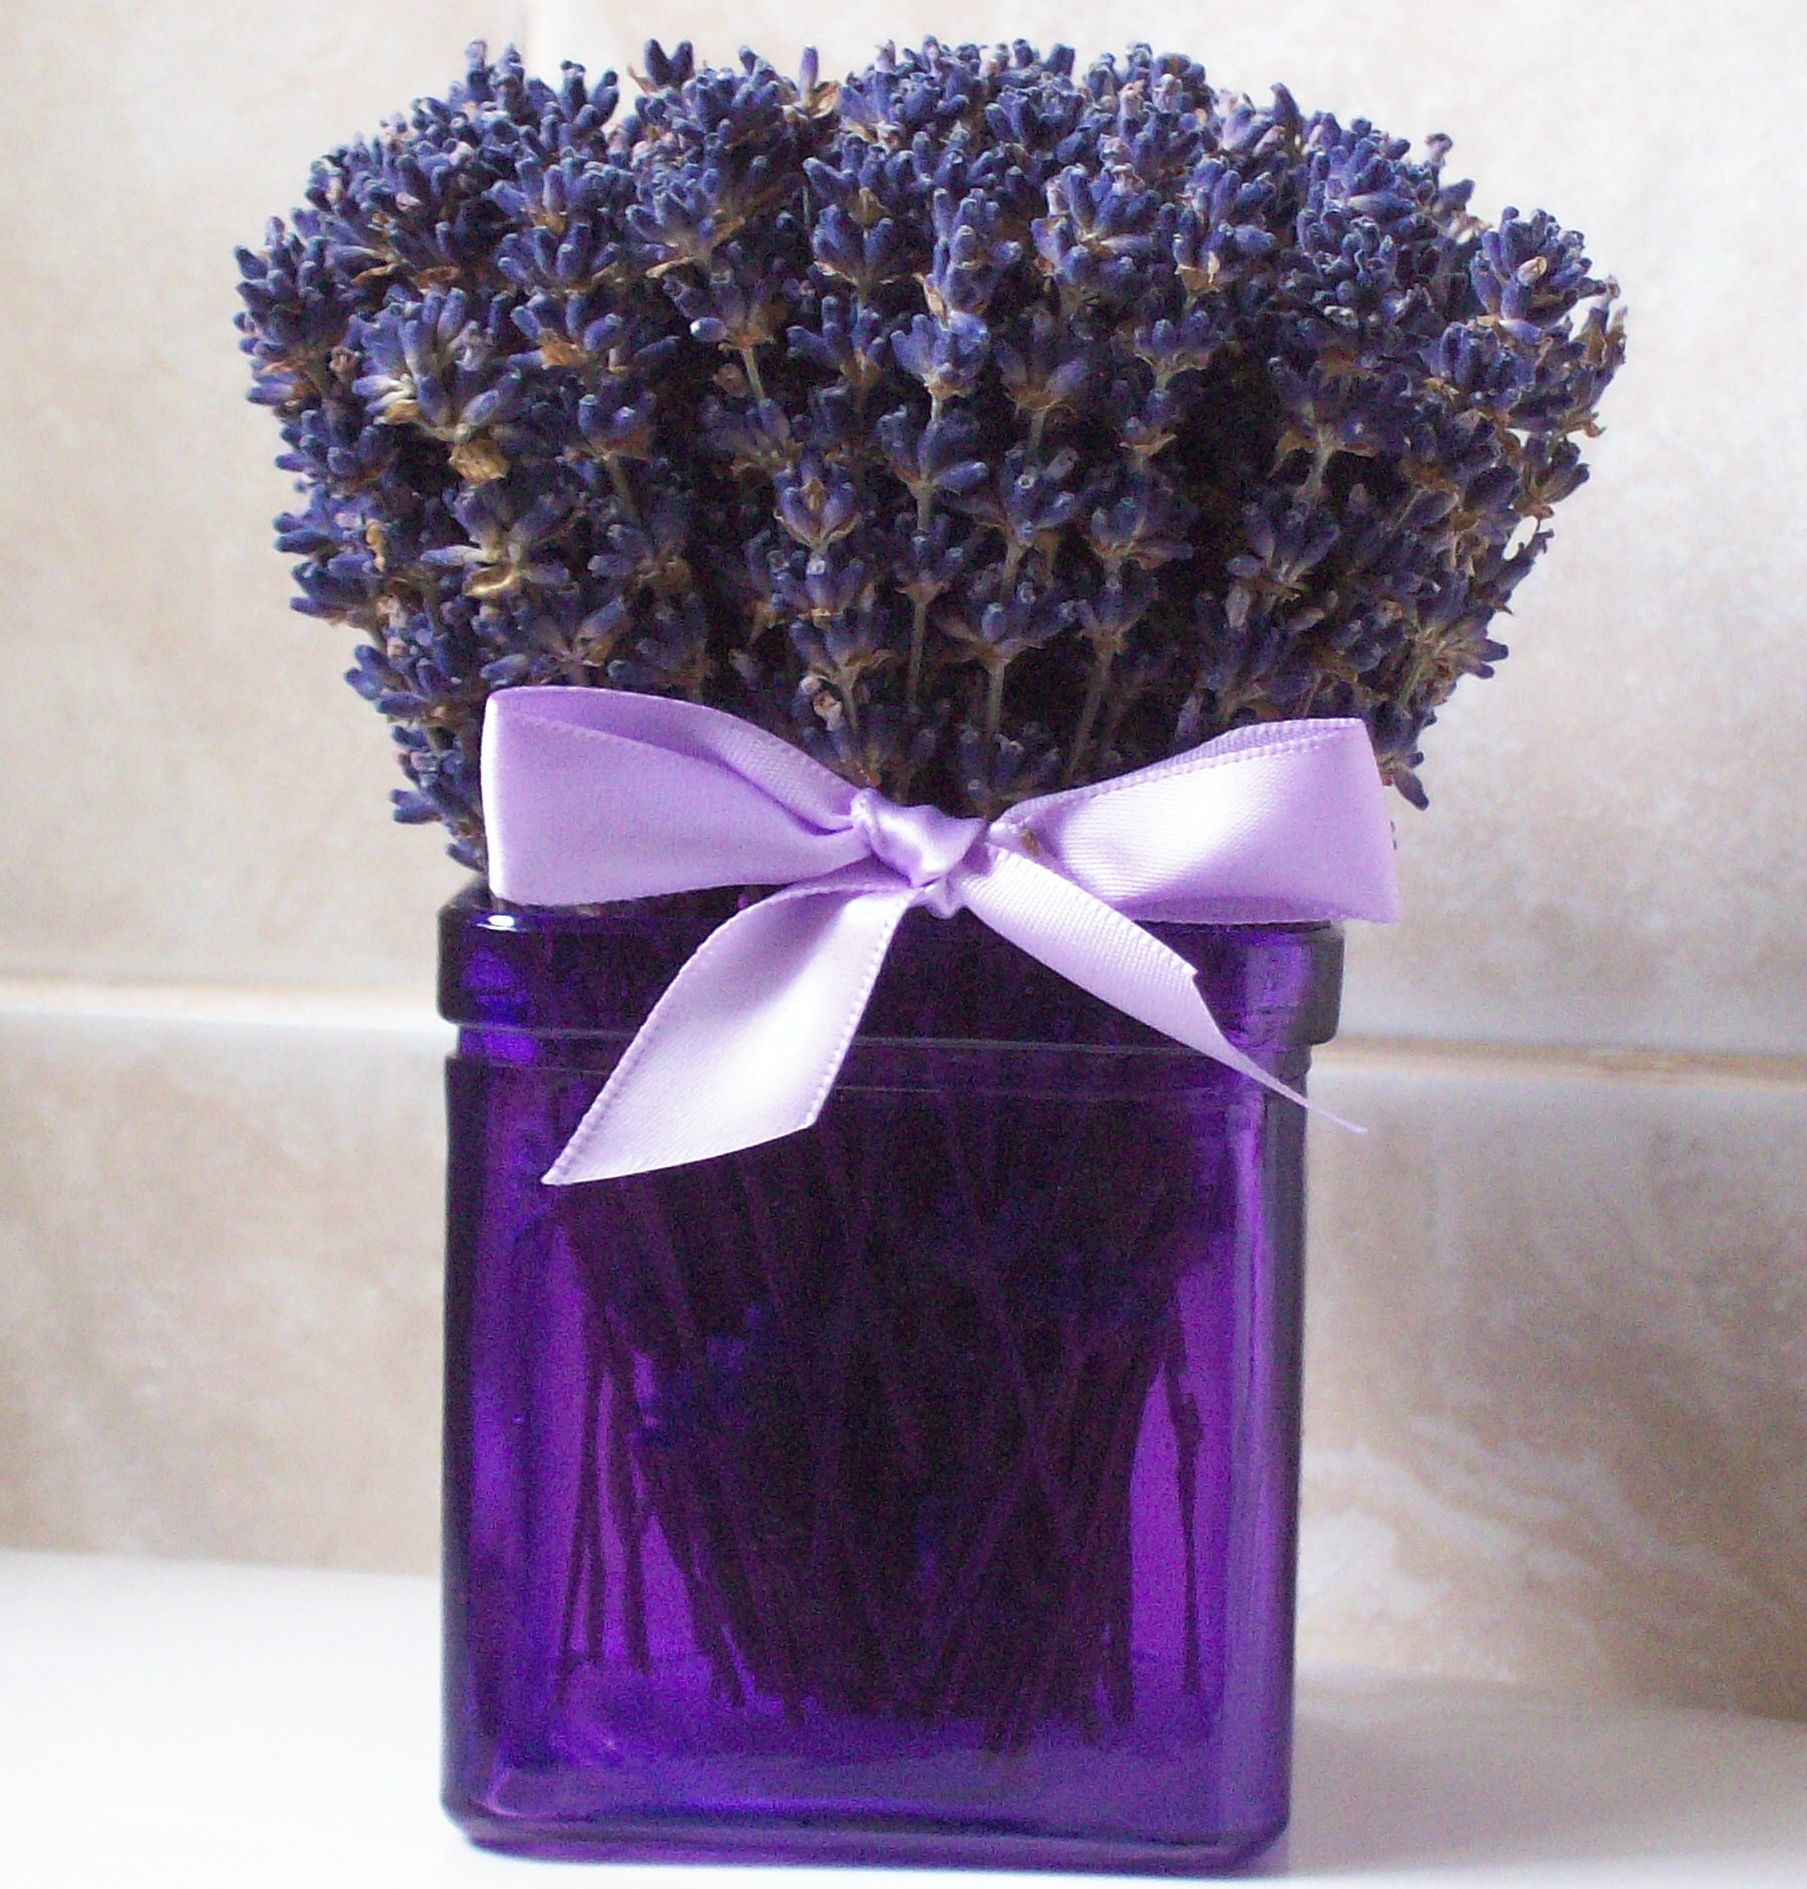 Enjoy the soothing scent of dried   lavender with this pretty Mini Lavender   Arrangement.